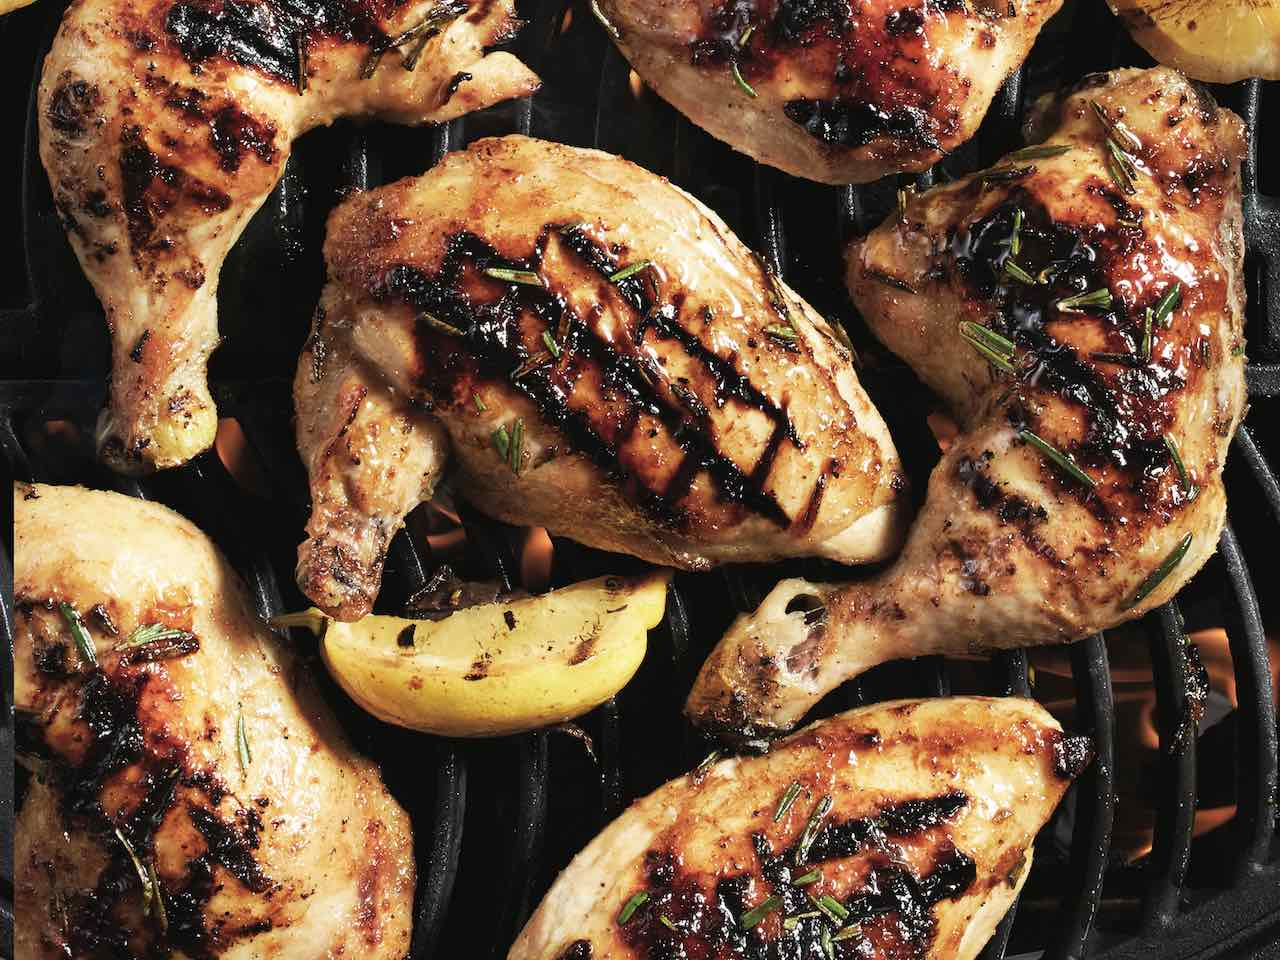 Chicken legs and lemon wedges on grill